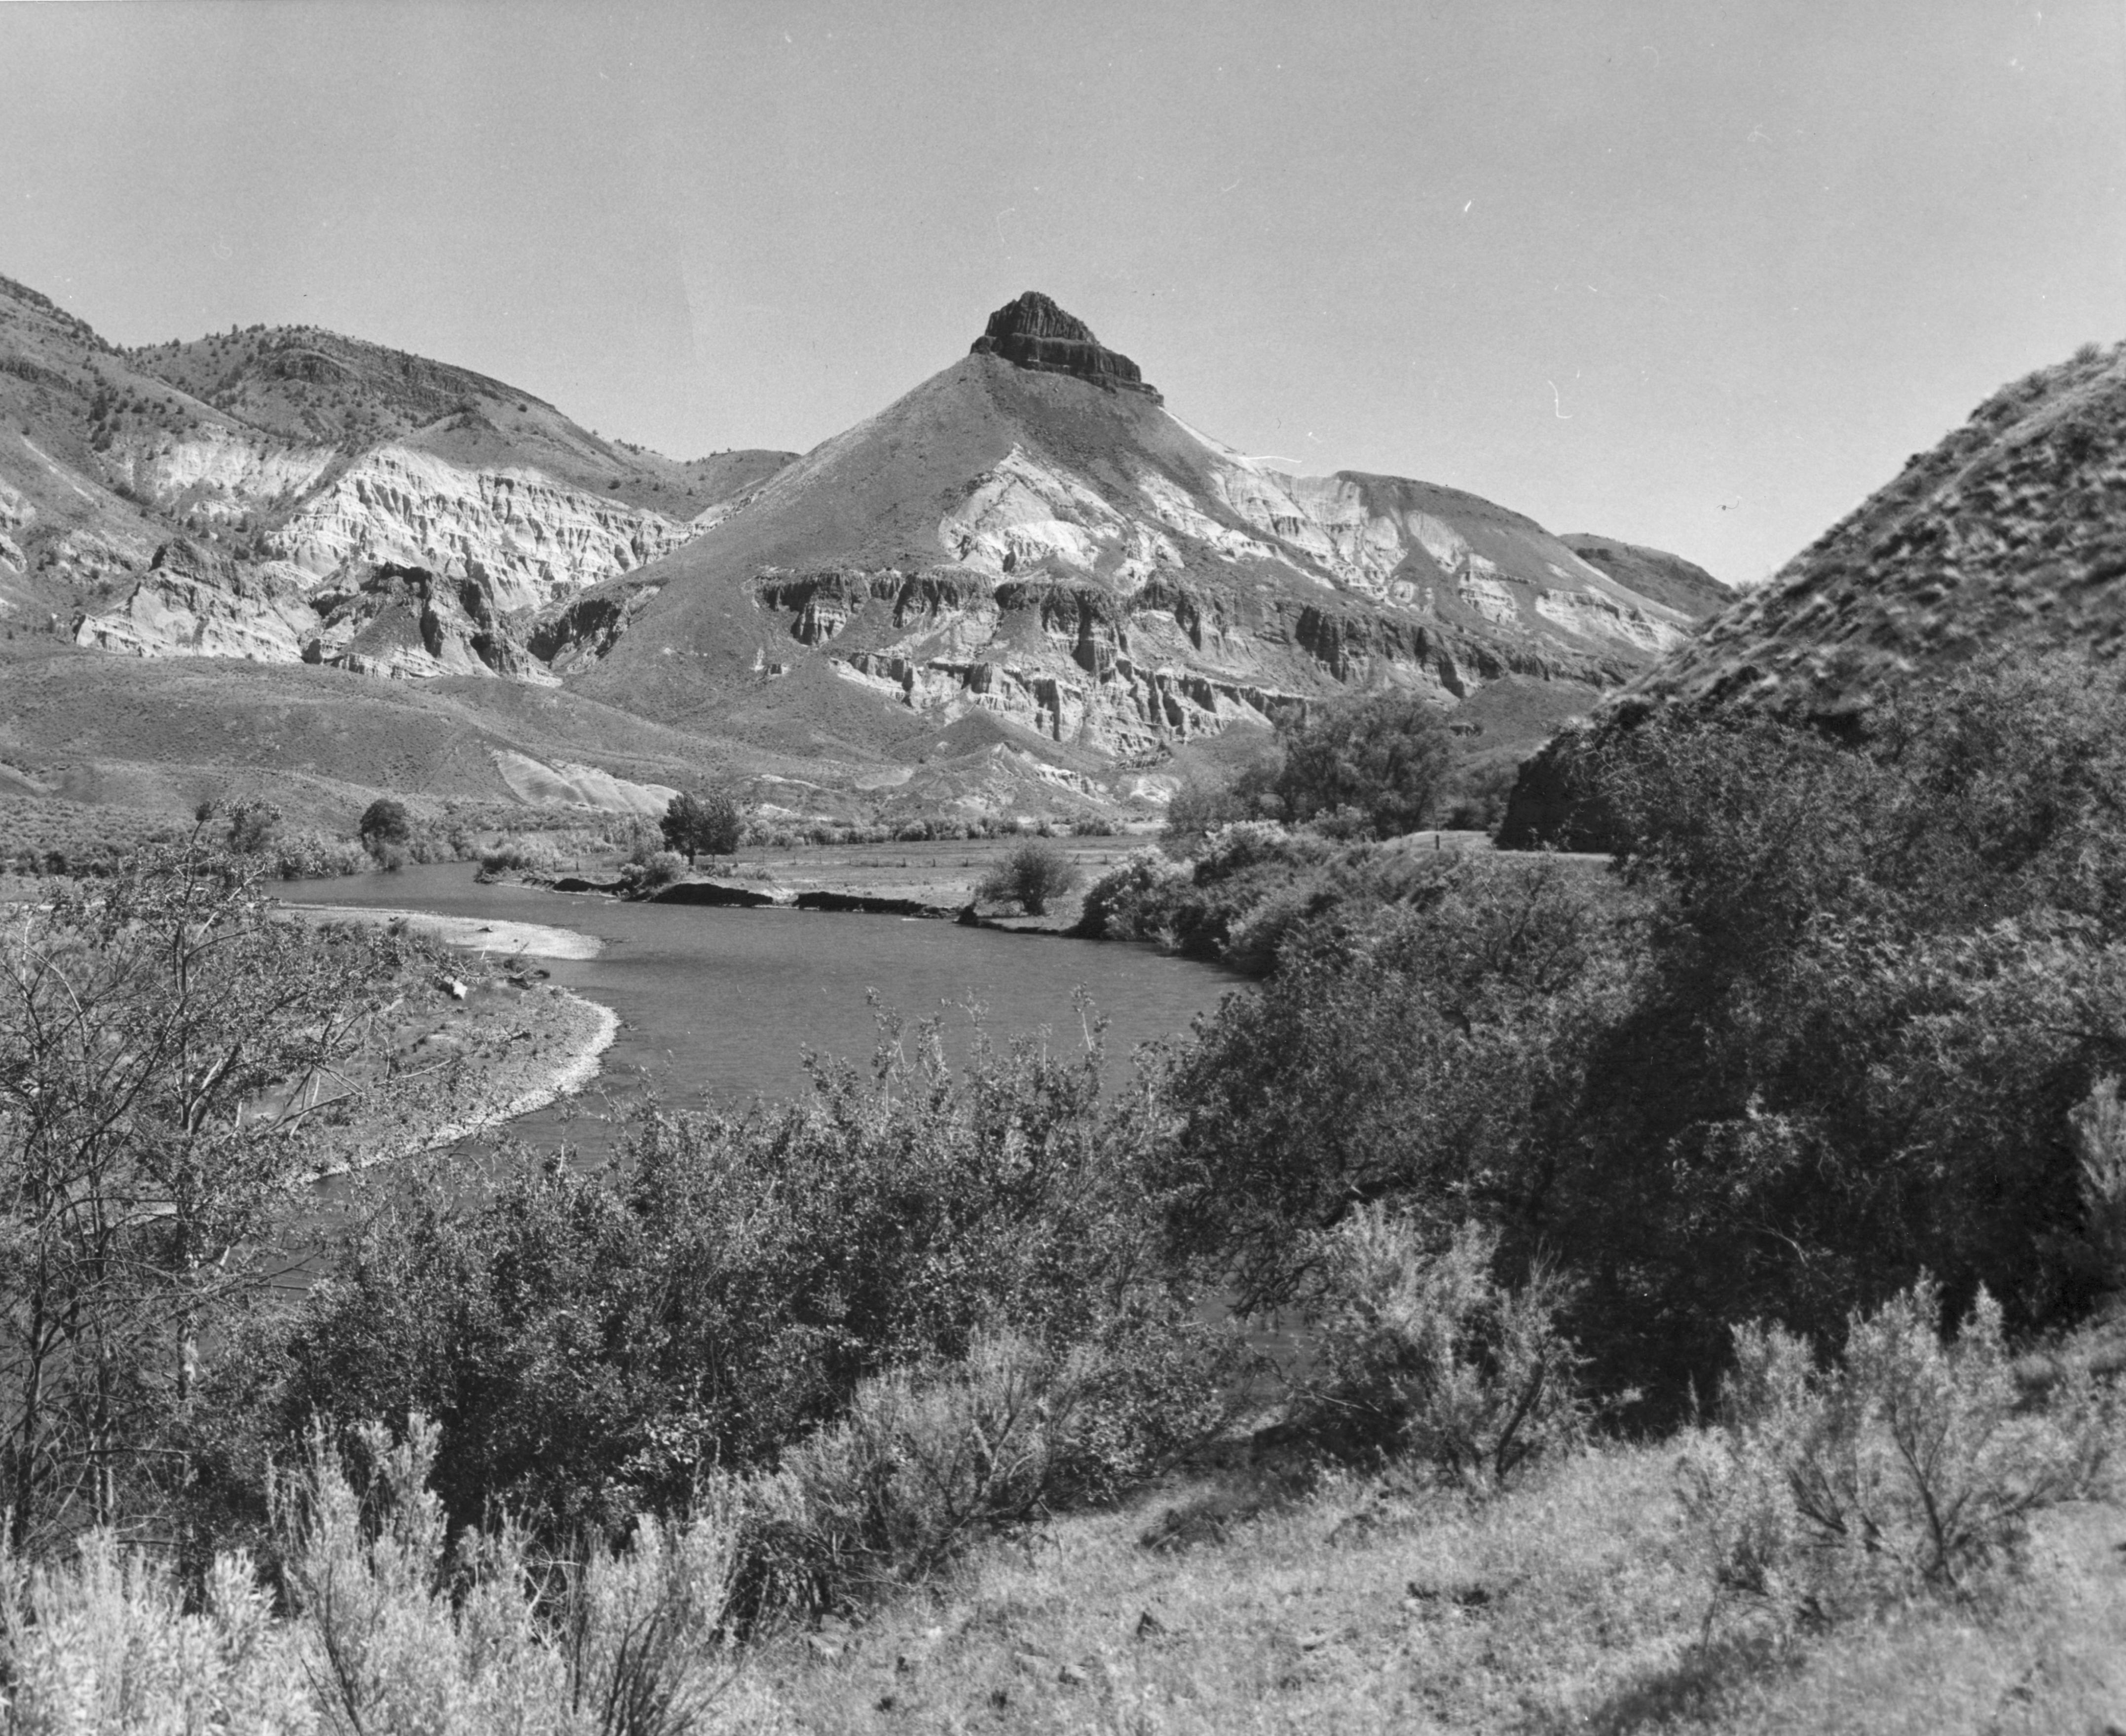 Sheep Mountain, fossil beds of the John Day River, Oregon